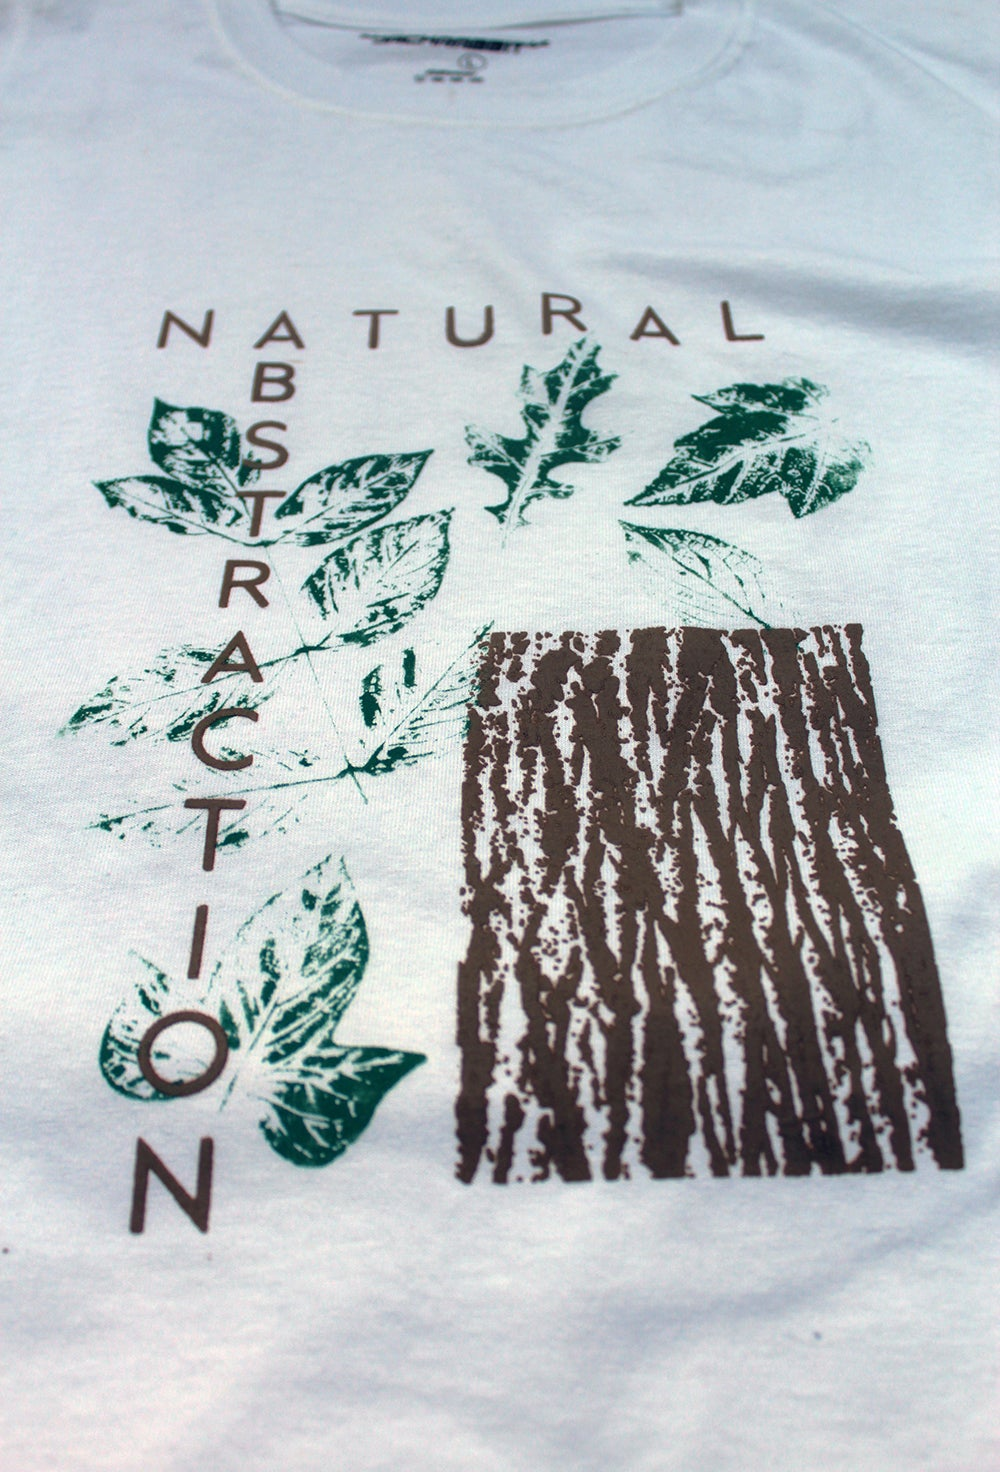 Image of FJB X JR 'Natural Abstraction' T-Shirt